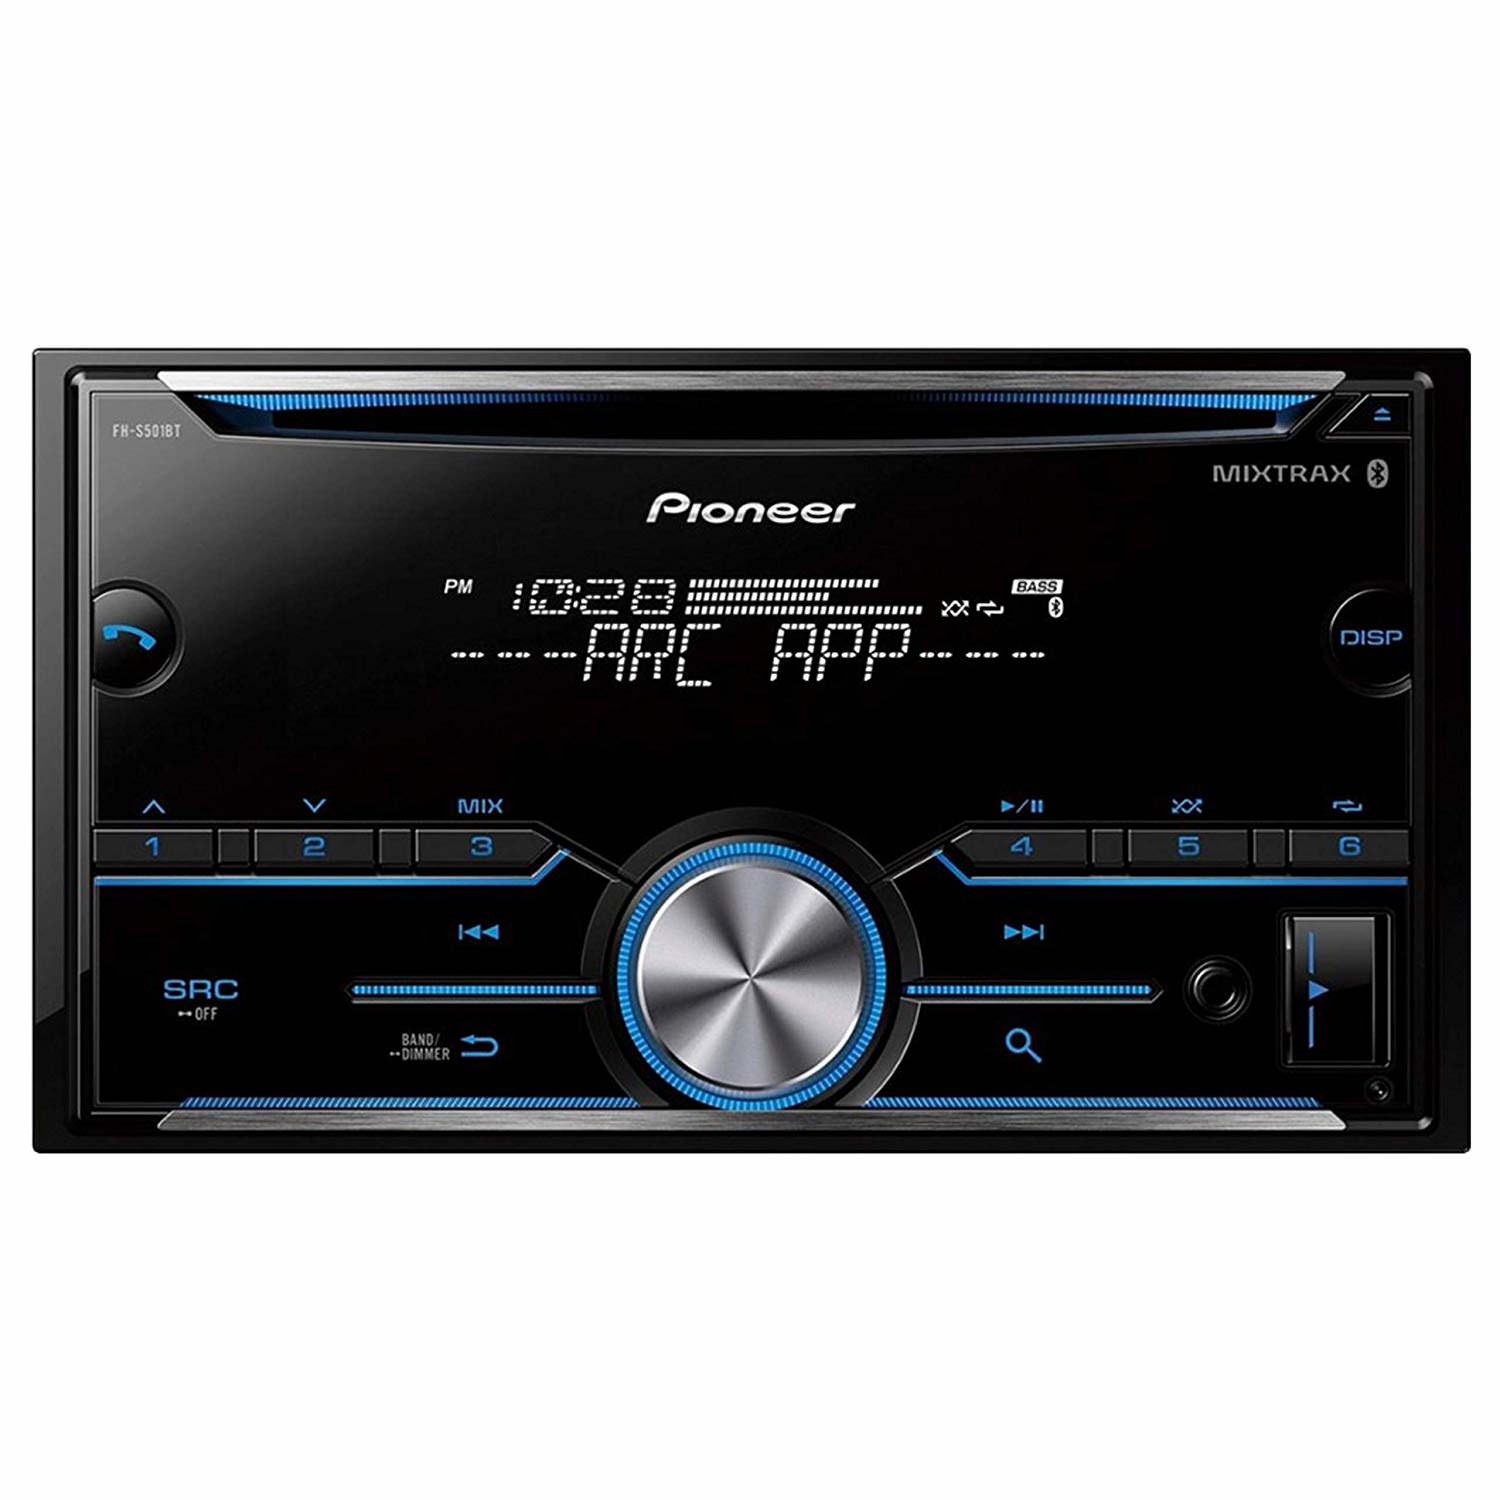 Pioneer FH-S501BT Double DIN CD Receiver with Improved Pioneer ARC App Compatibility, MIXTRAX, Built-in Bluetooth (Open Box)